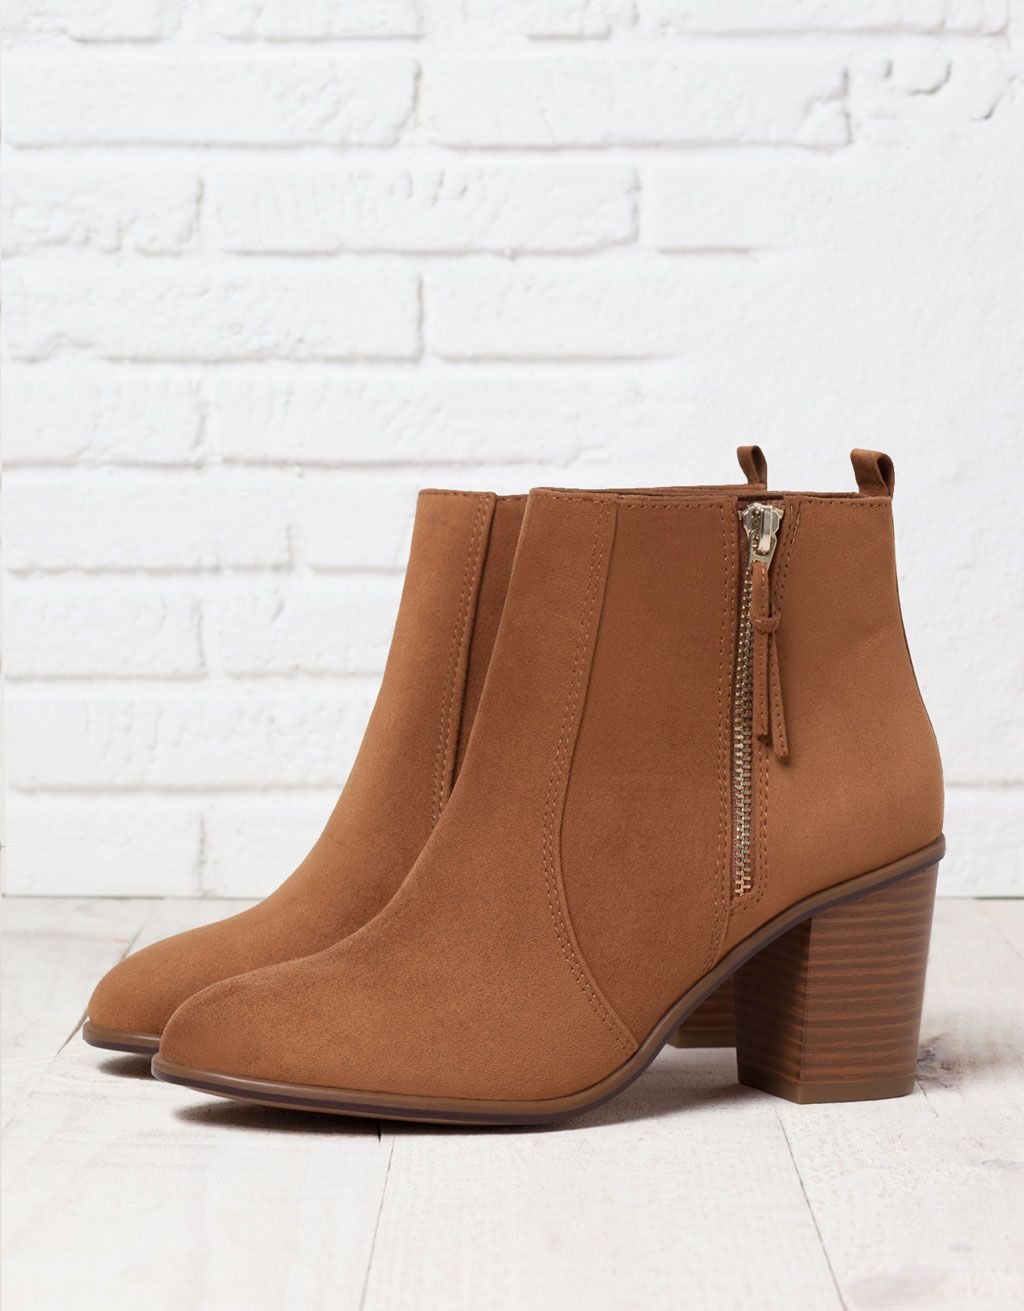 bershka boots with heels - shoes - bershka serbia | bottine à